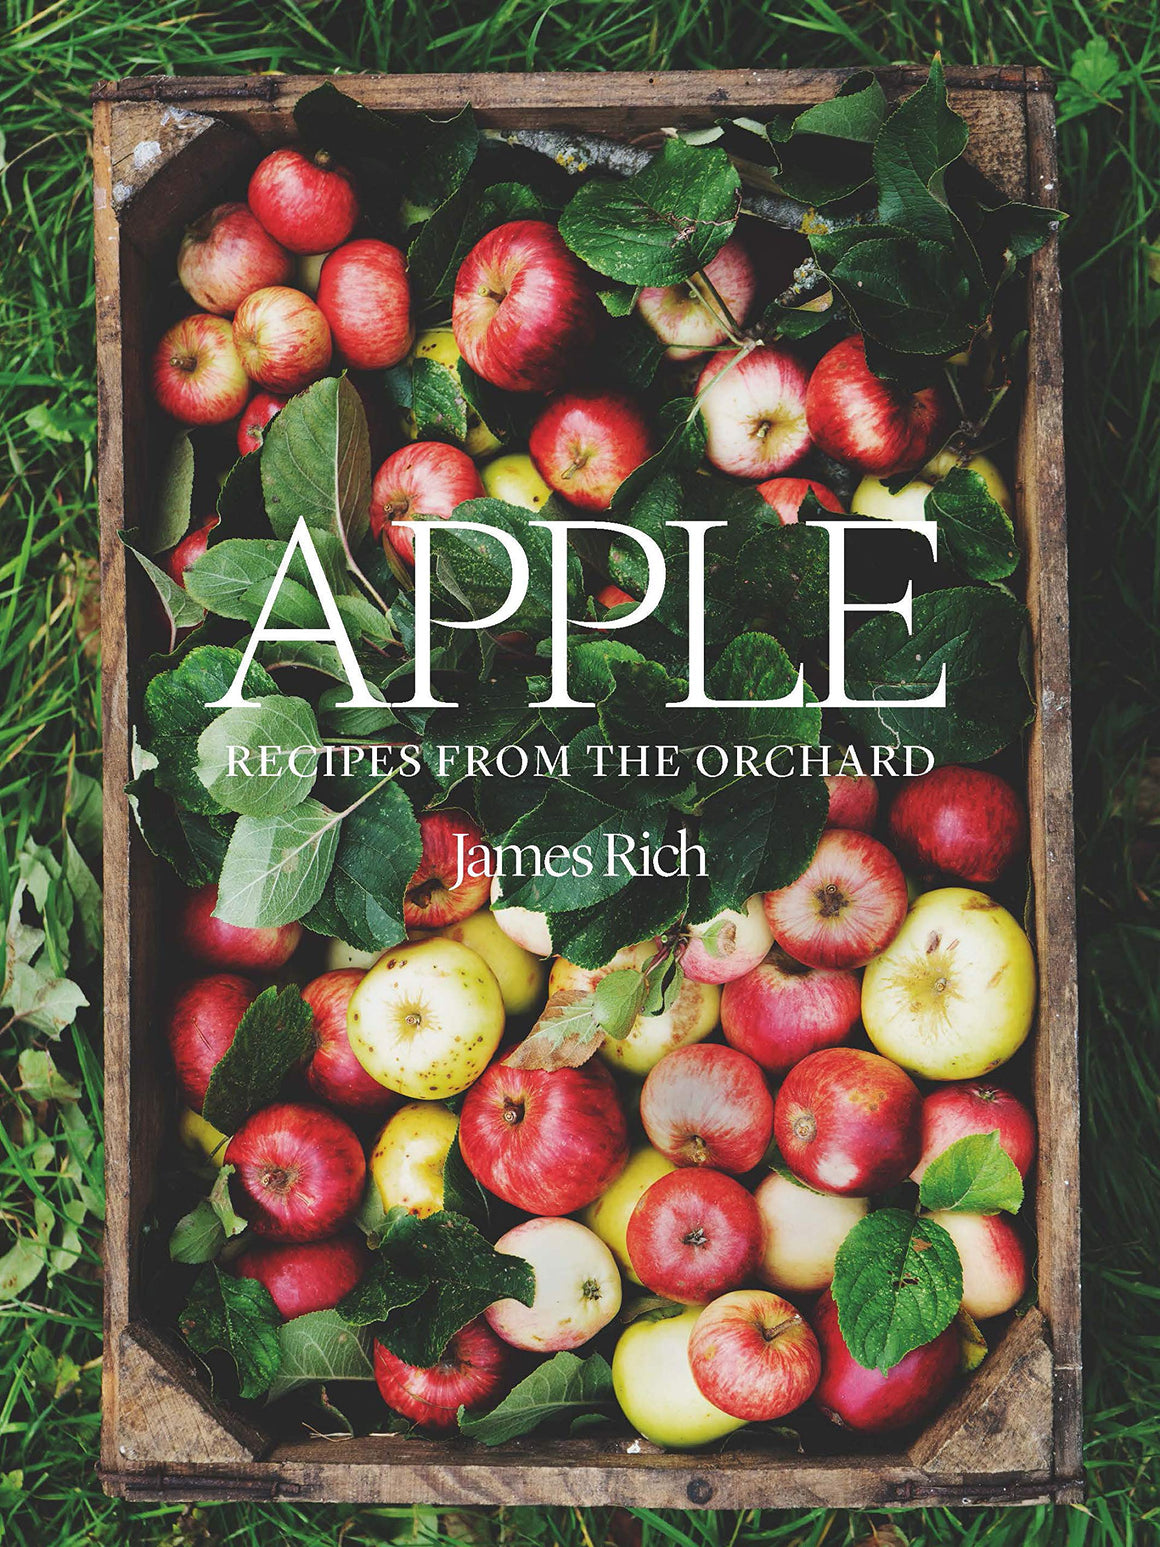 SIGNED! James Rich. Apple: Recipes from the Orchard